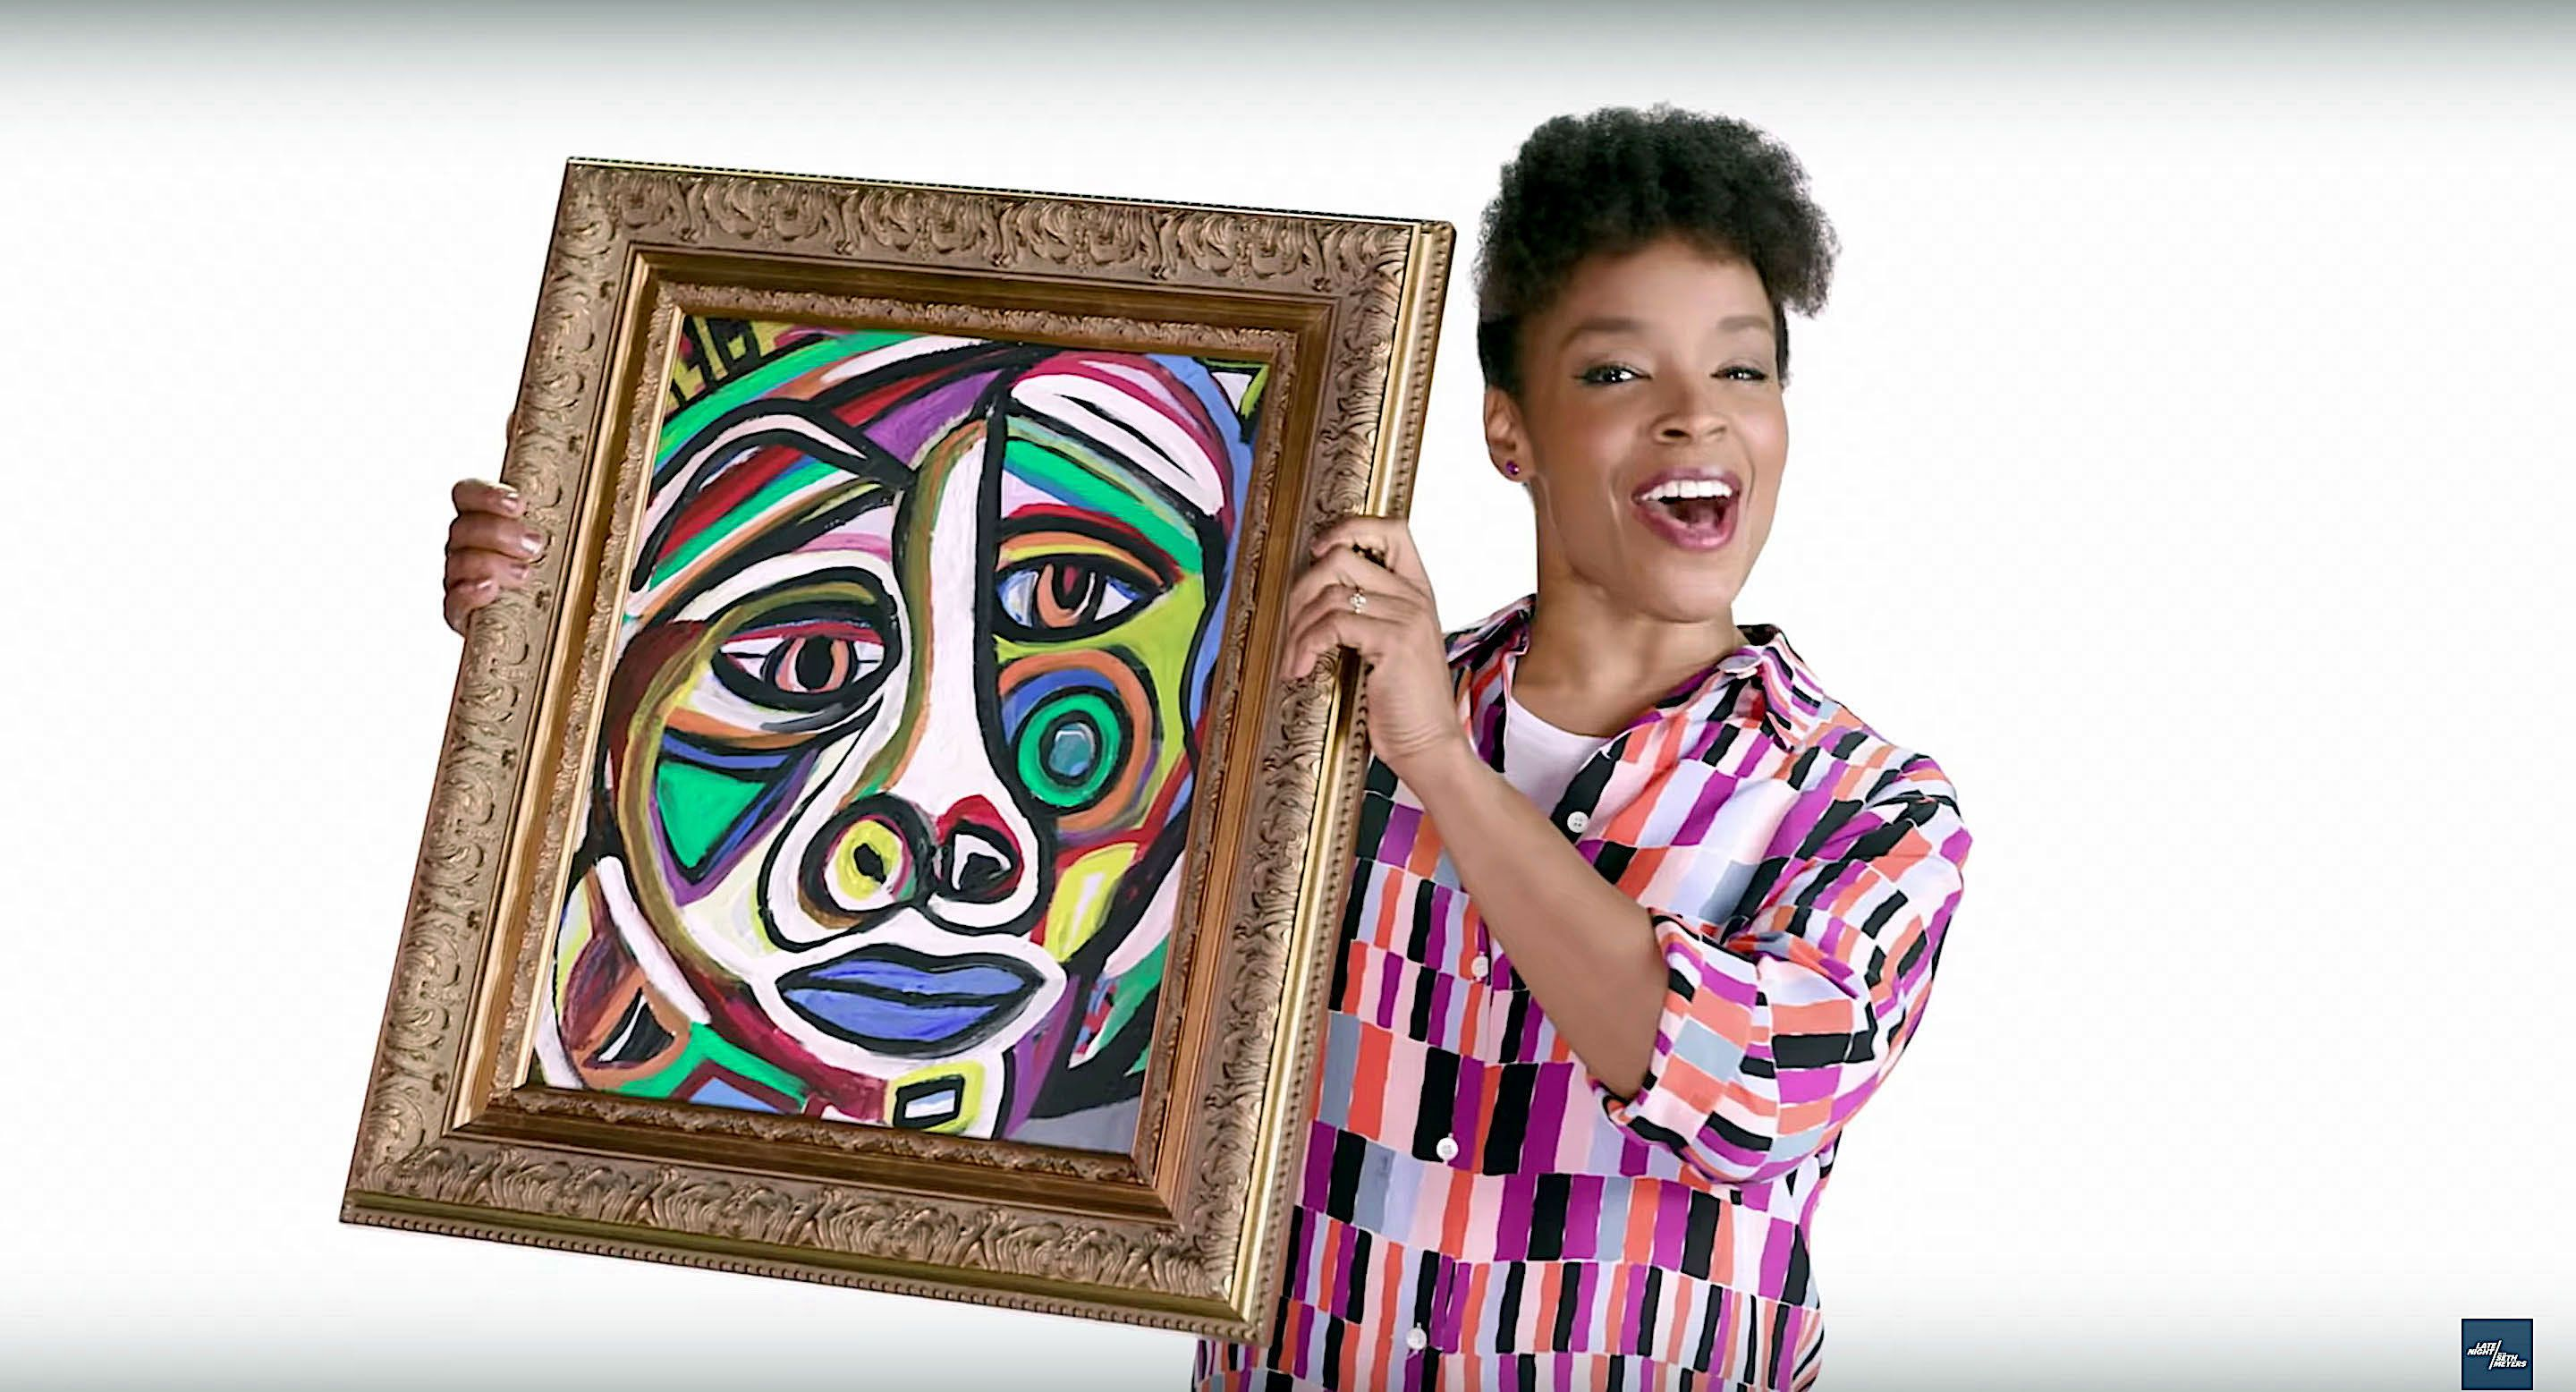 Amber Ruffin of Late Night remakes art created by problematic men